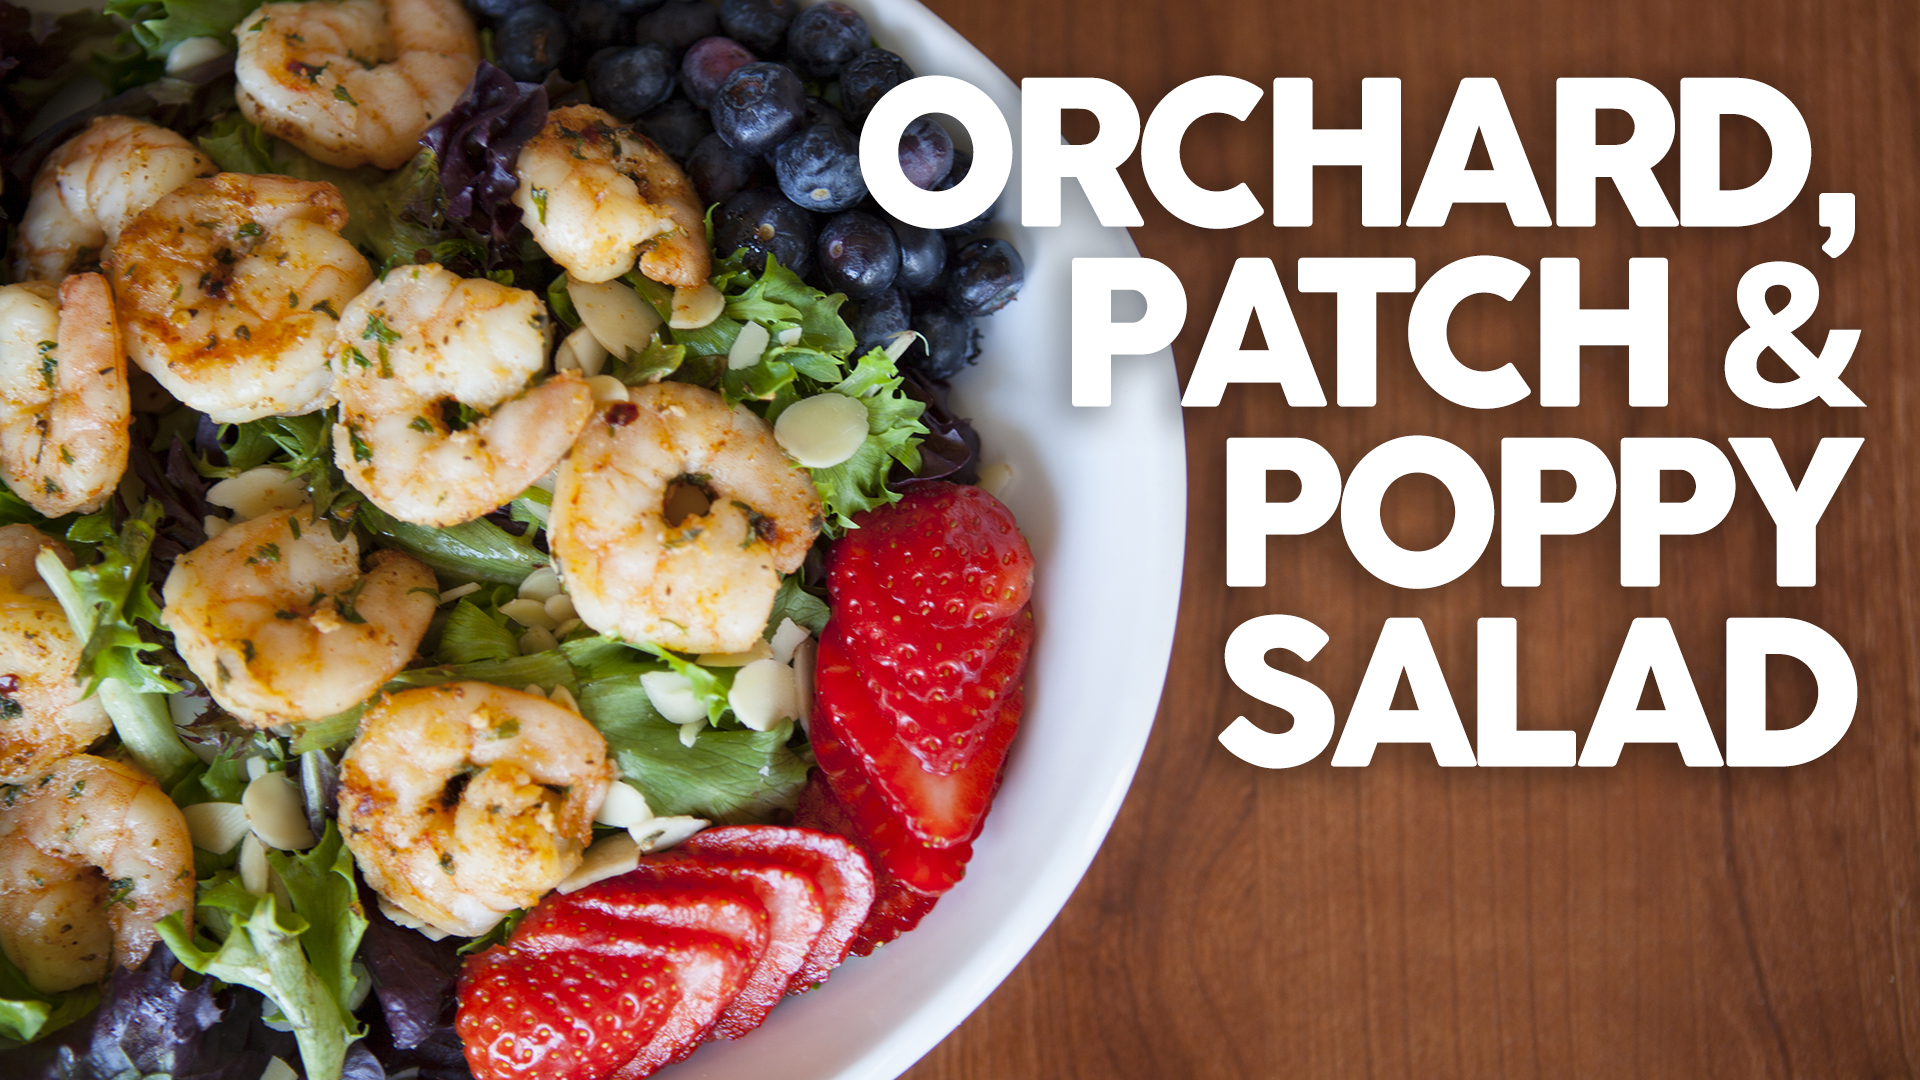 Orchard, Patch & Poppy Salad